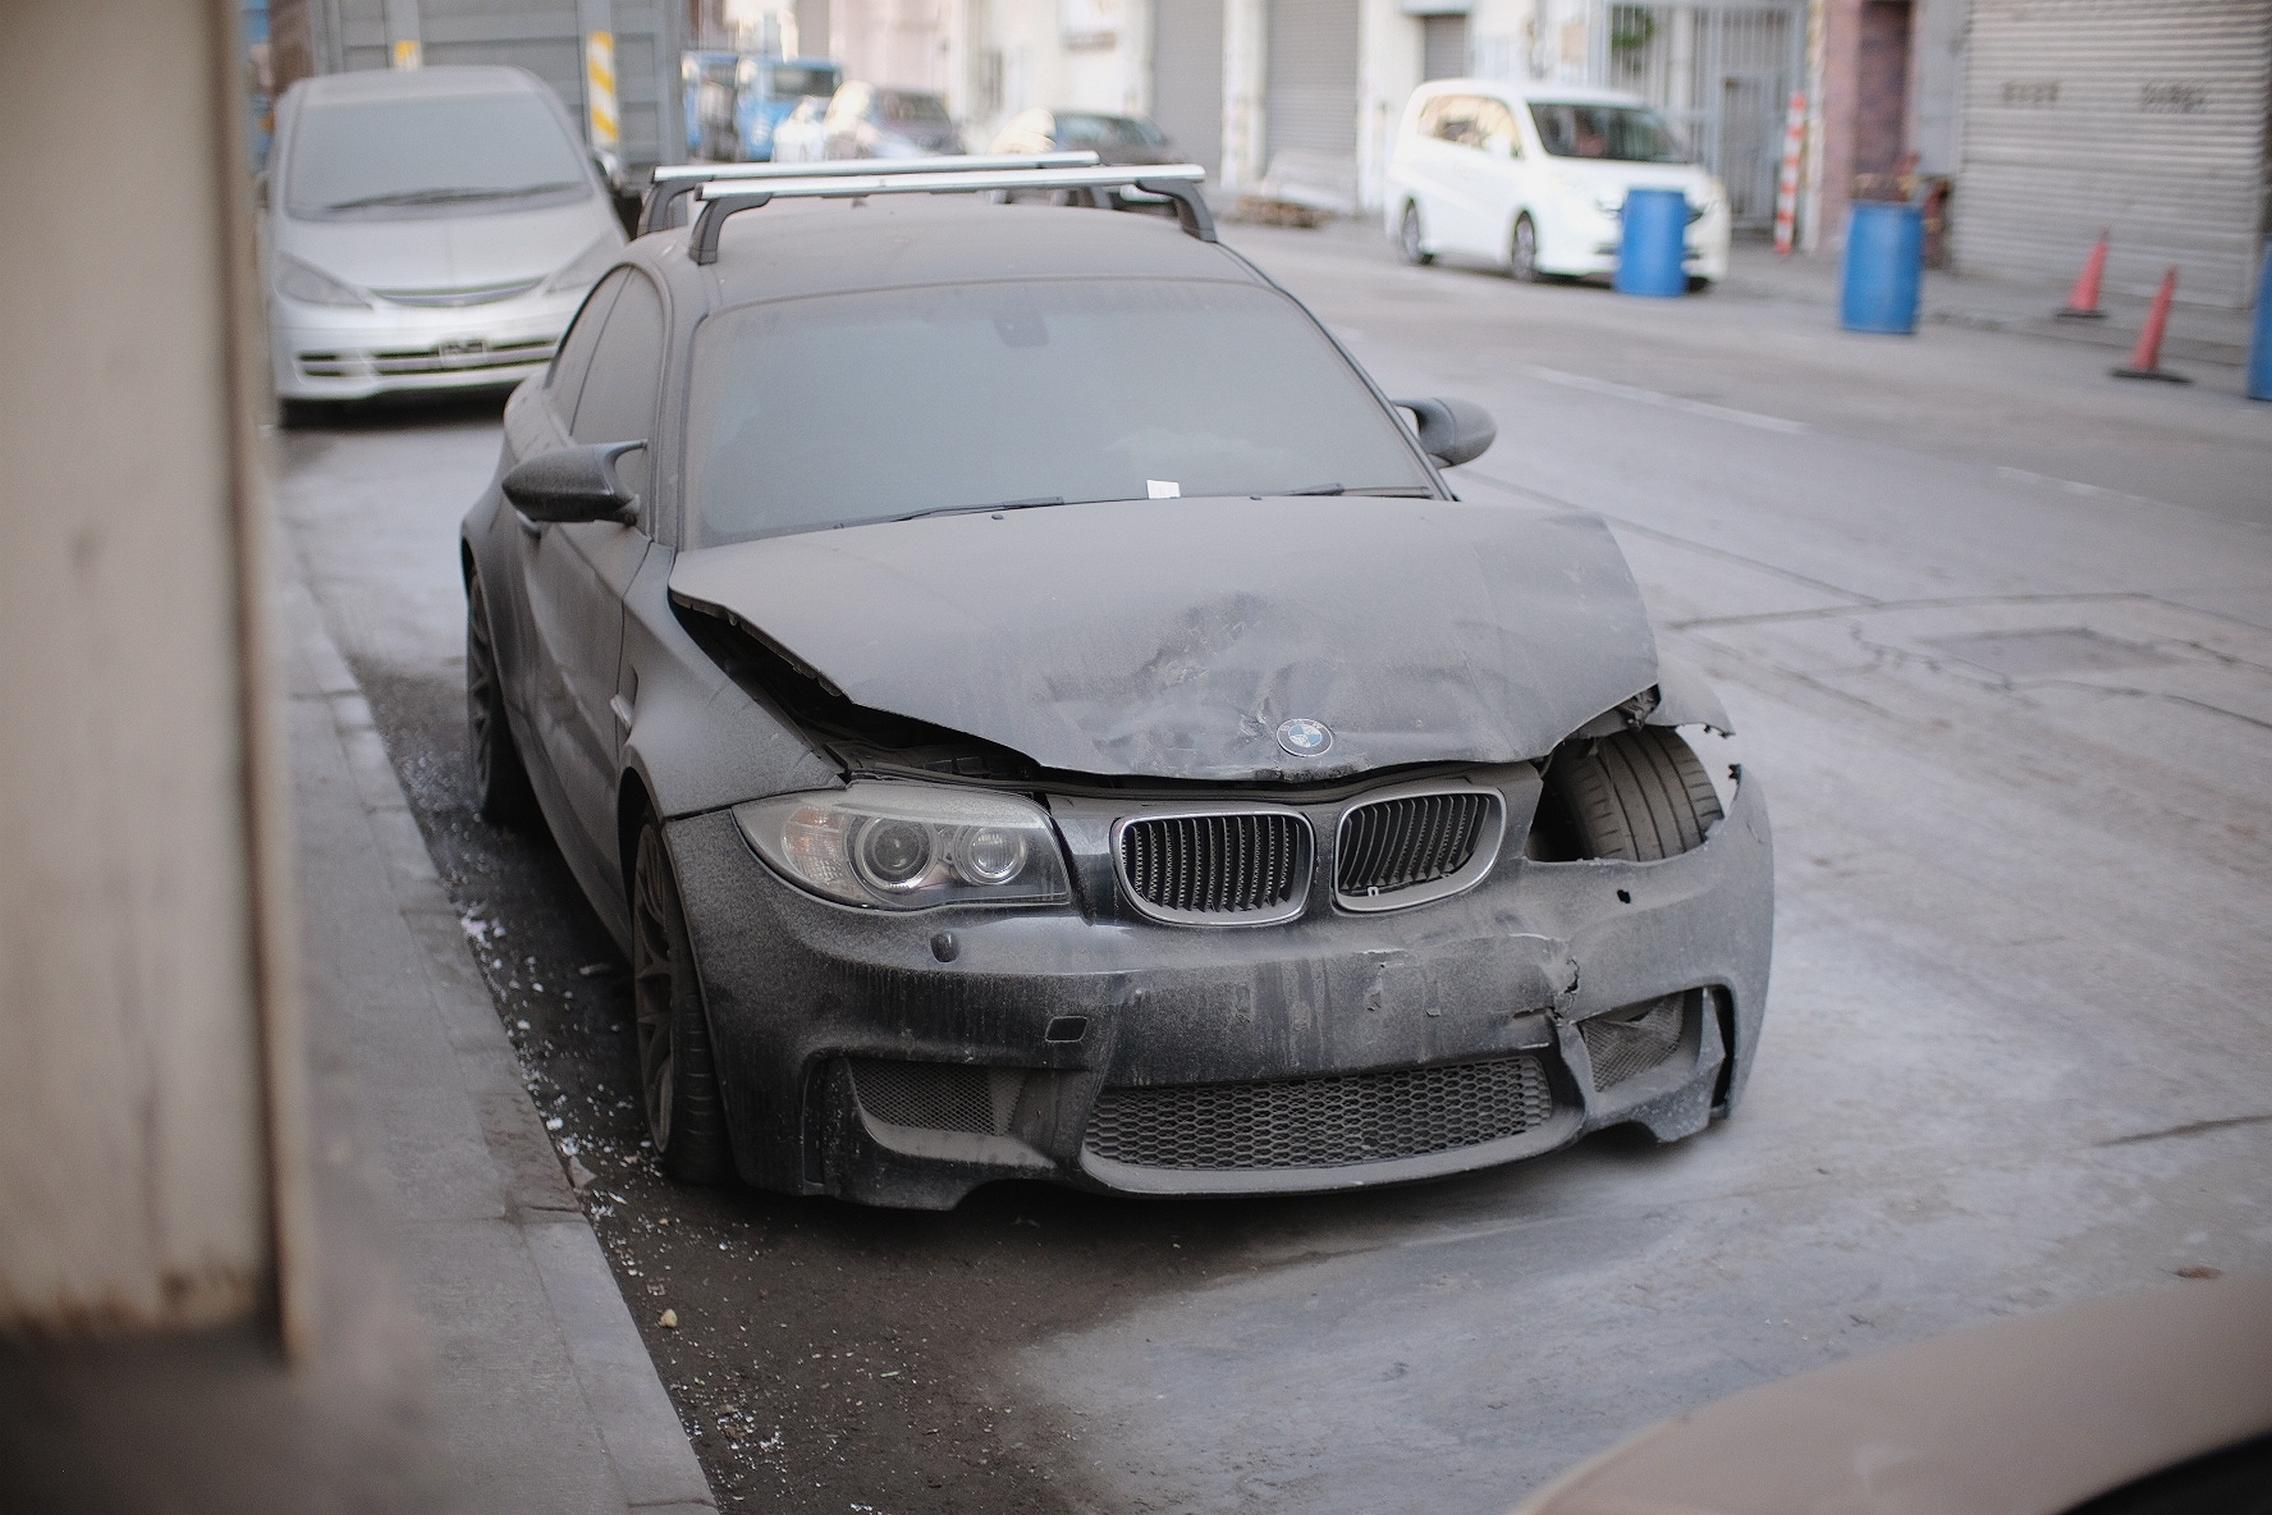 Wrecked-BMW-1M-Coupe